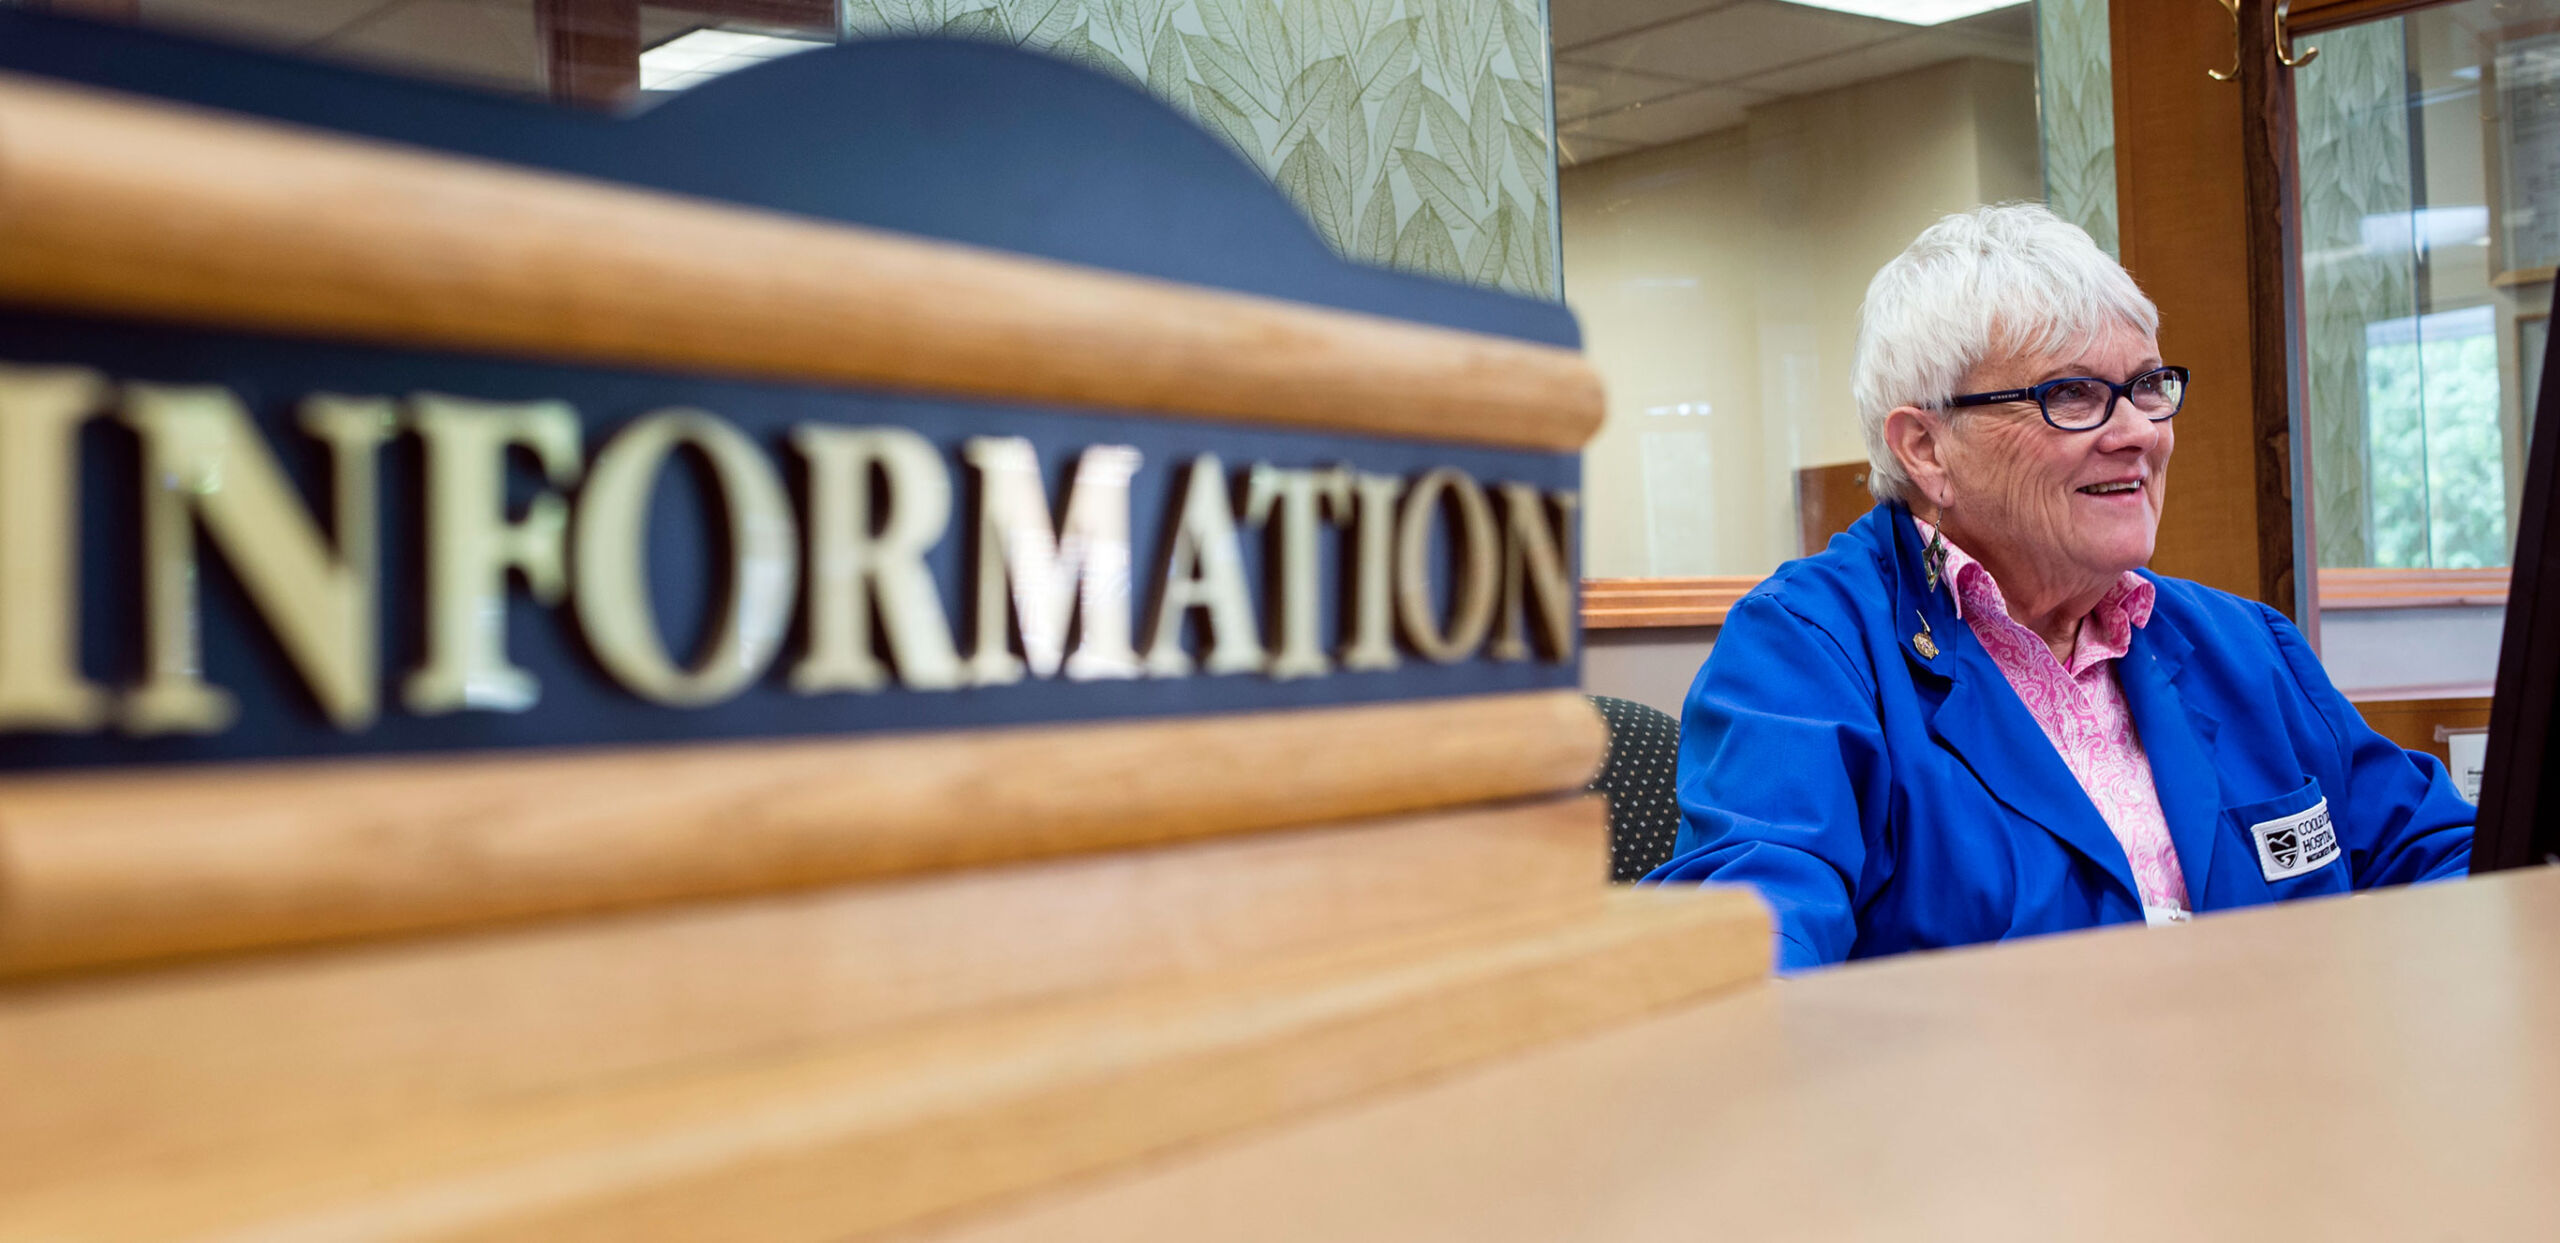 A volunteer greets visitors to the information desk at Cooley Dickinson Hospital, 30 Locust Street, Northampton, MA 01060.